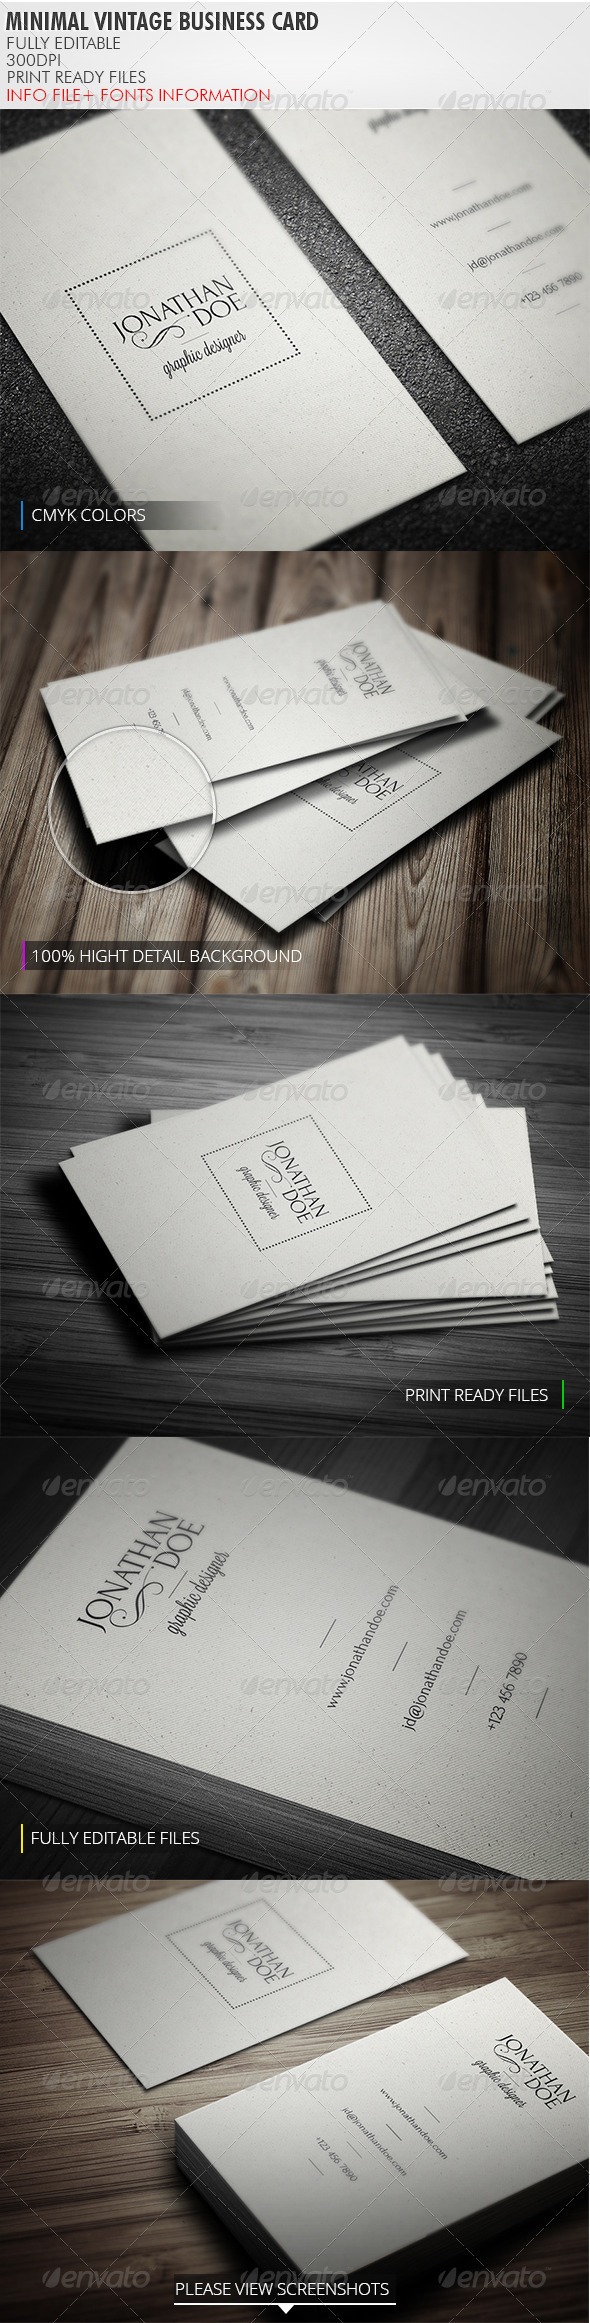 Minimal Vintage Business Card - Retro/Vintage Business Cards